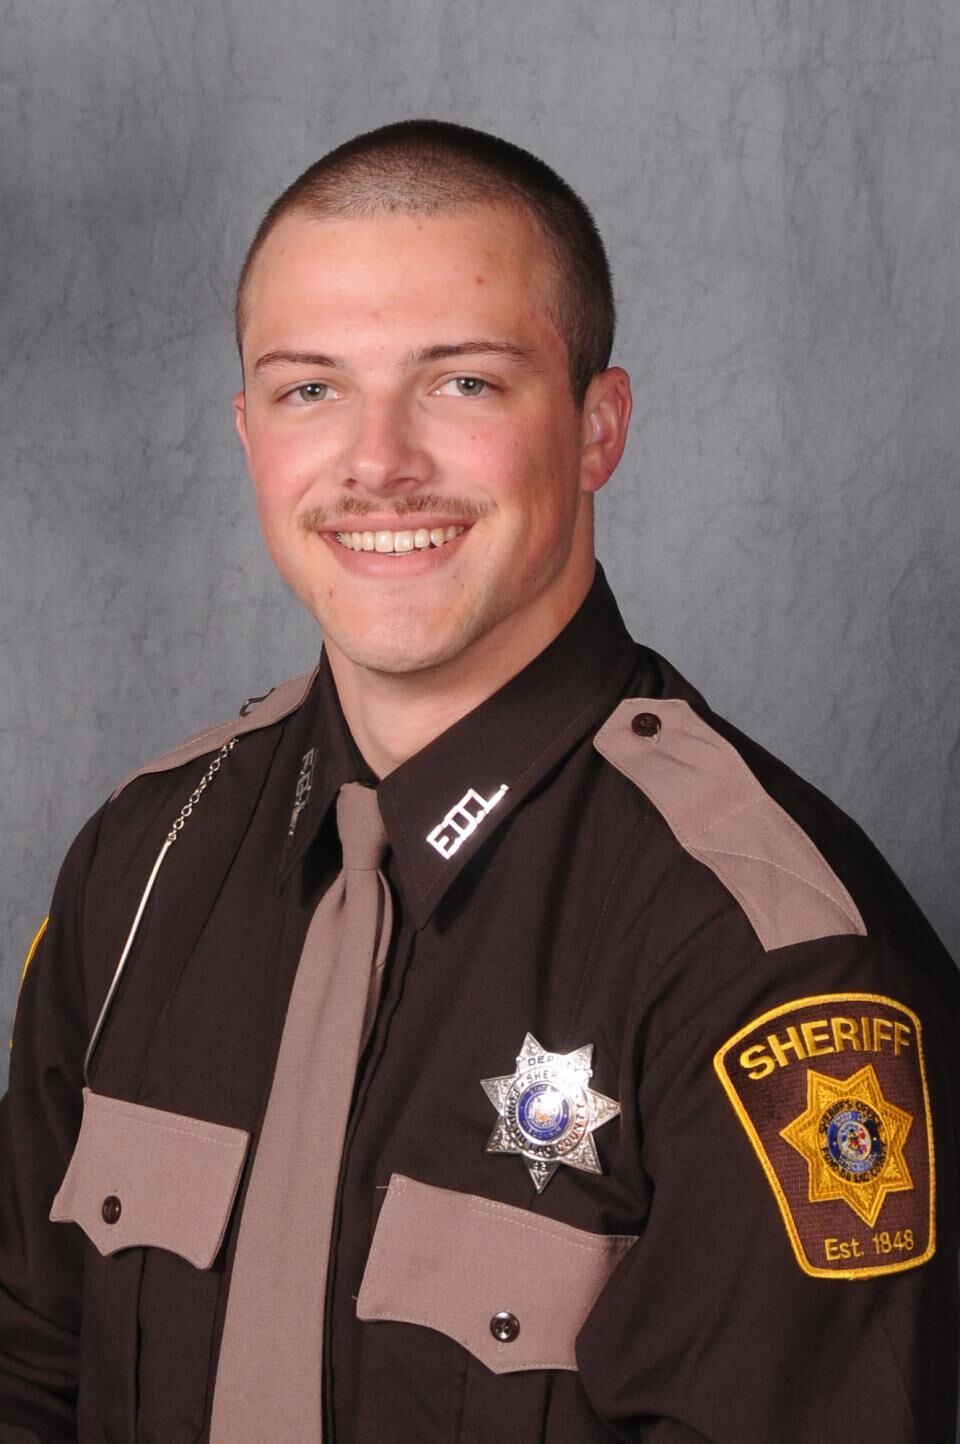 Off-duty Fond du Lac County Sheriff's Deputy saved a life, while assisting law enforcement in Fox River Mall shooting